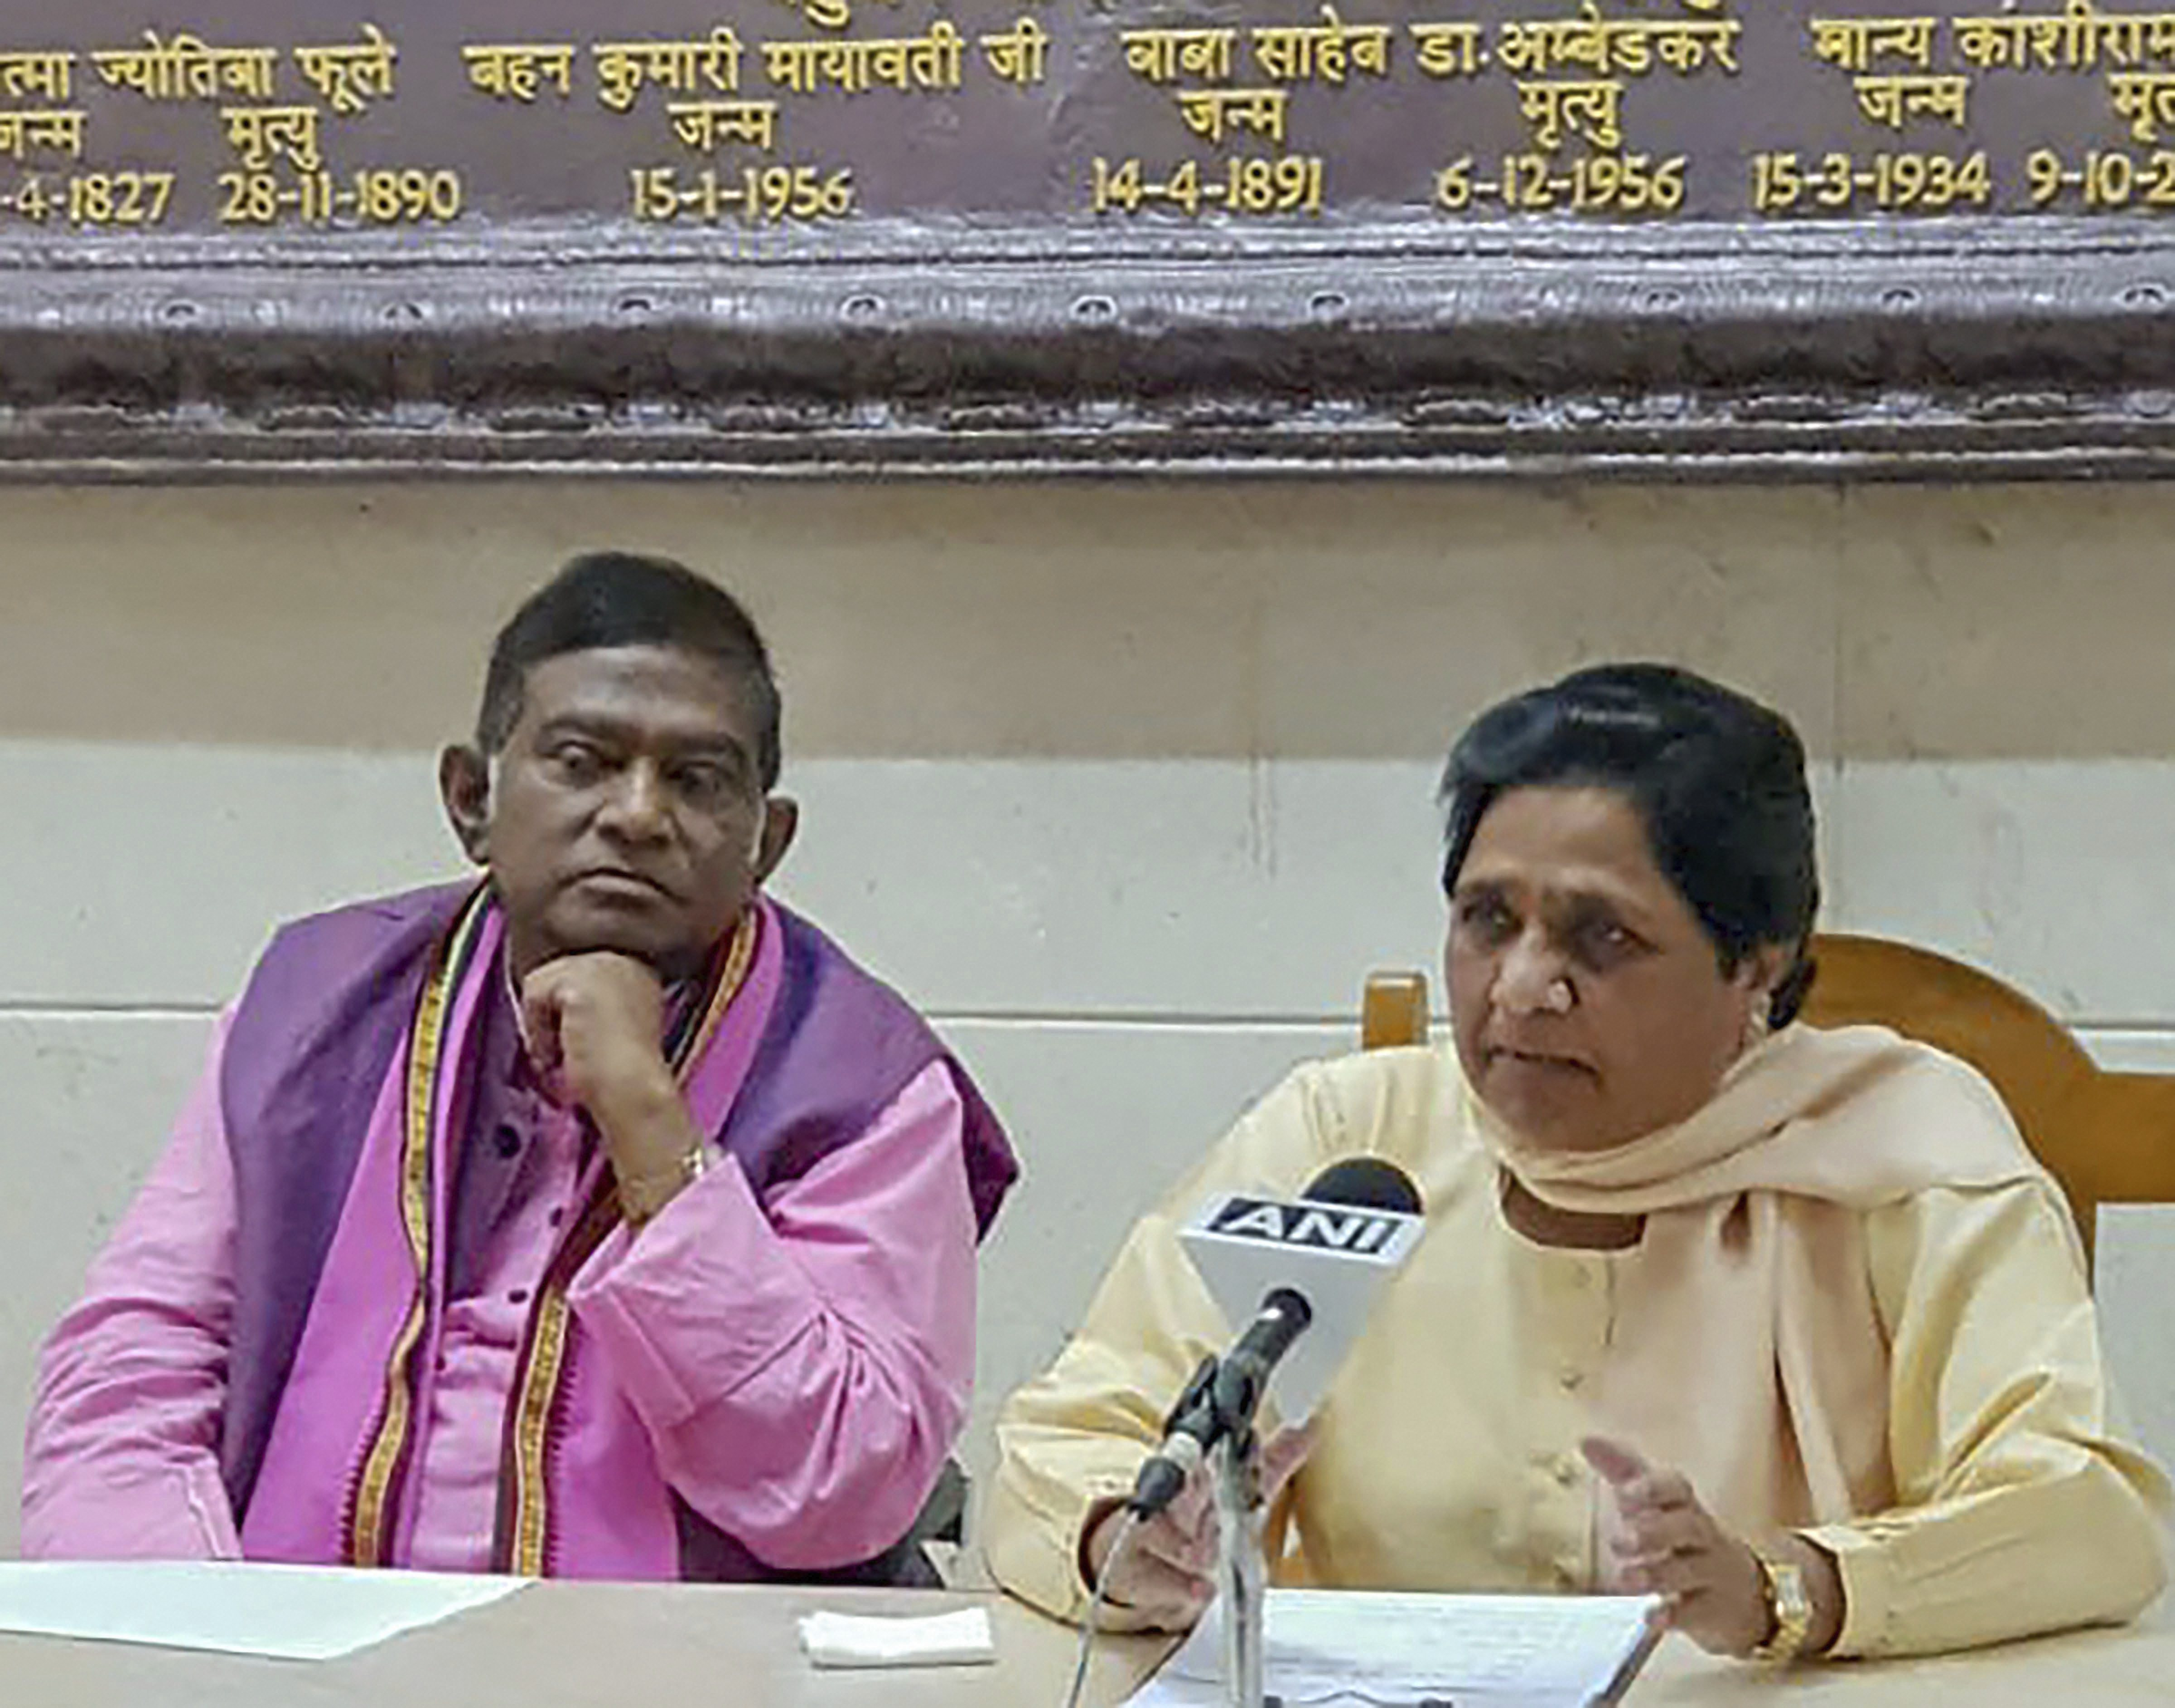 BSP supremo Mayawati and Janata Congress (Chhatisgarh) President Ajit Jogi during a press conference to annouce their alliance for assembly polls in Chhatisgarh, in Lucknow - PTI